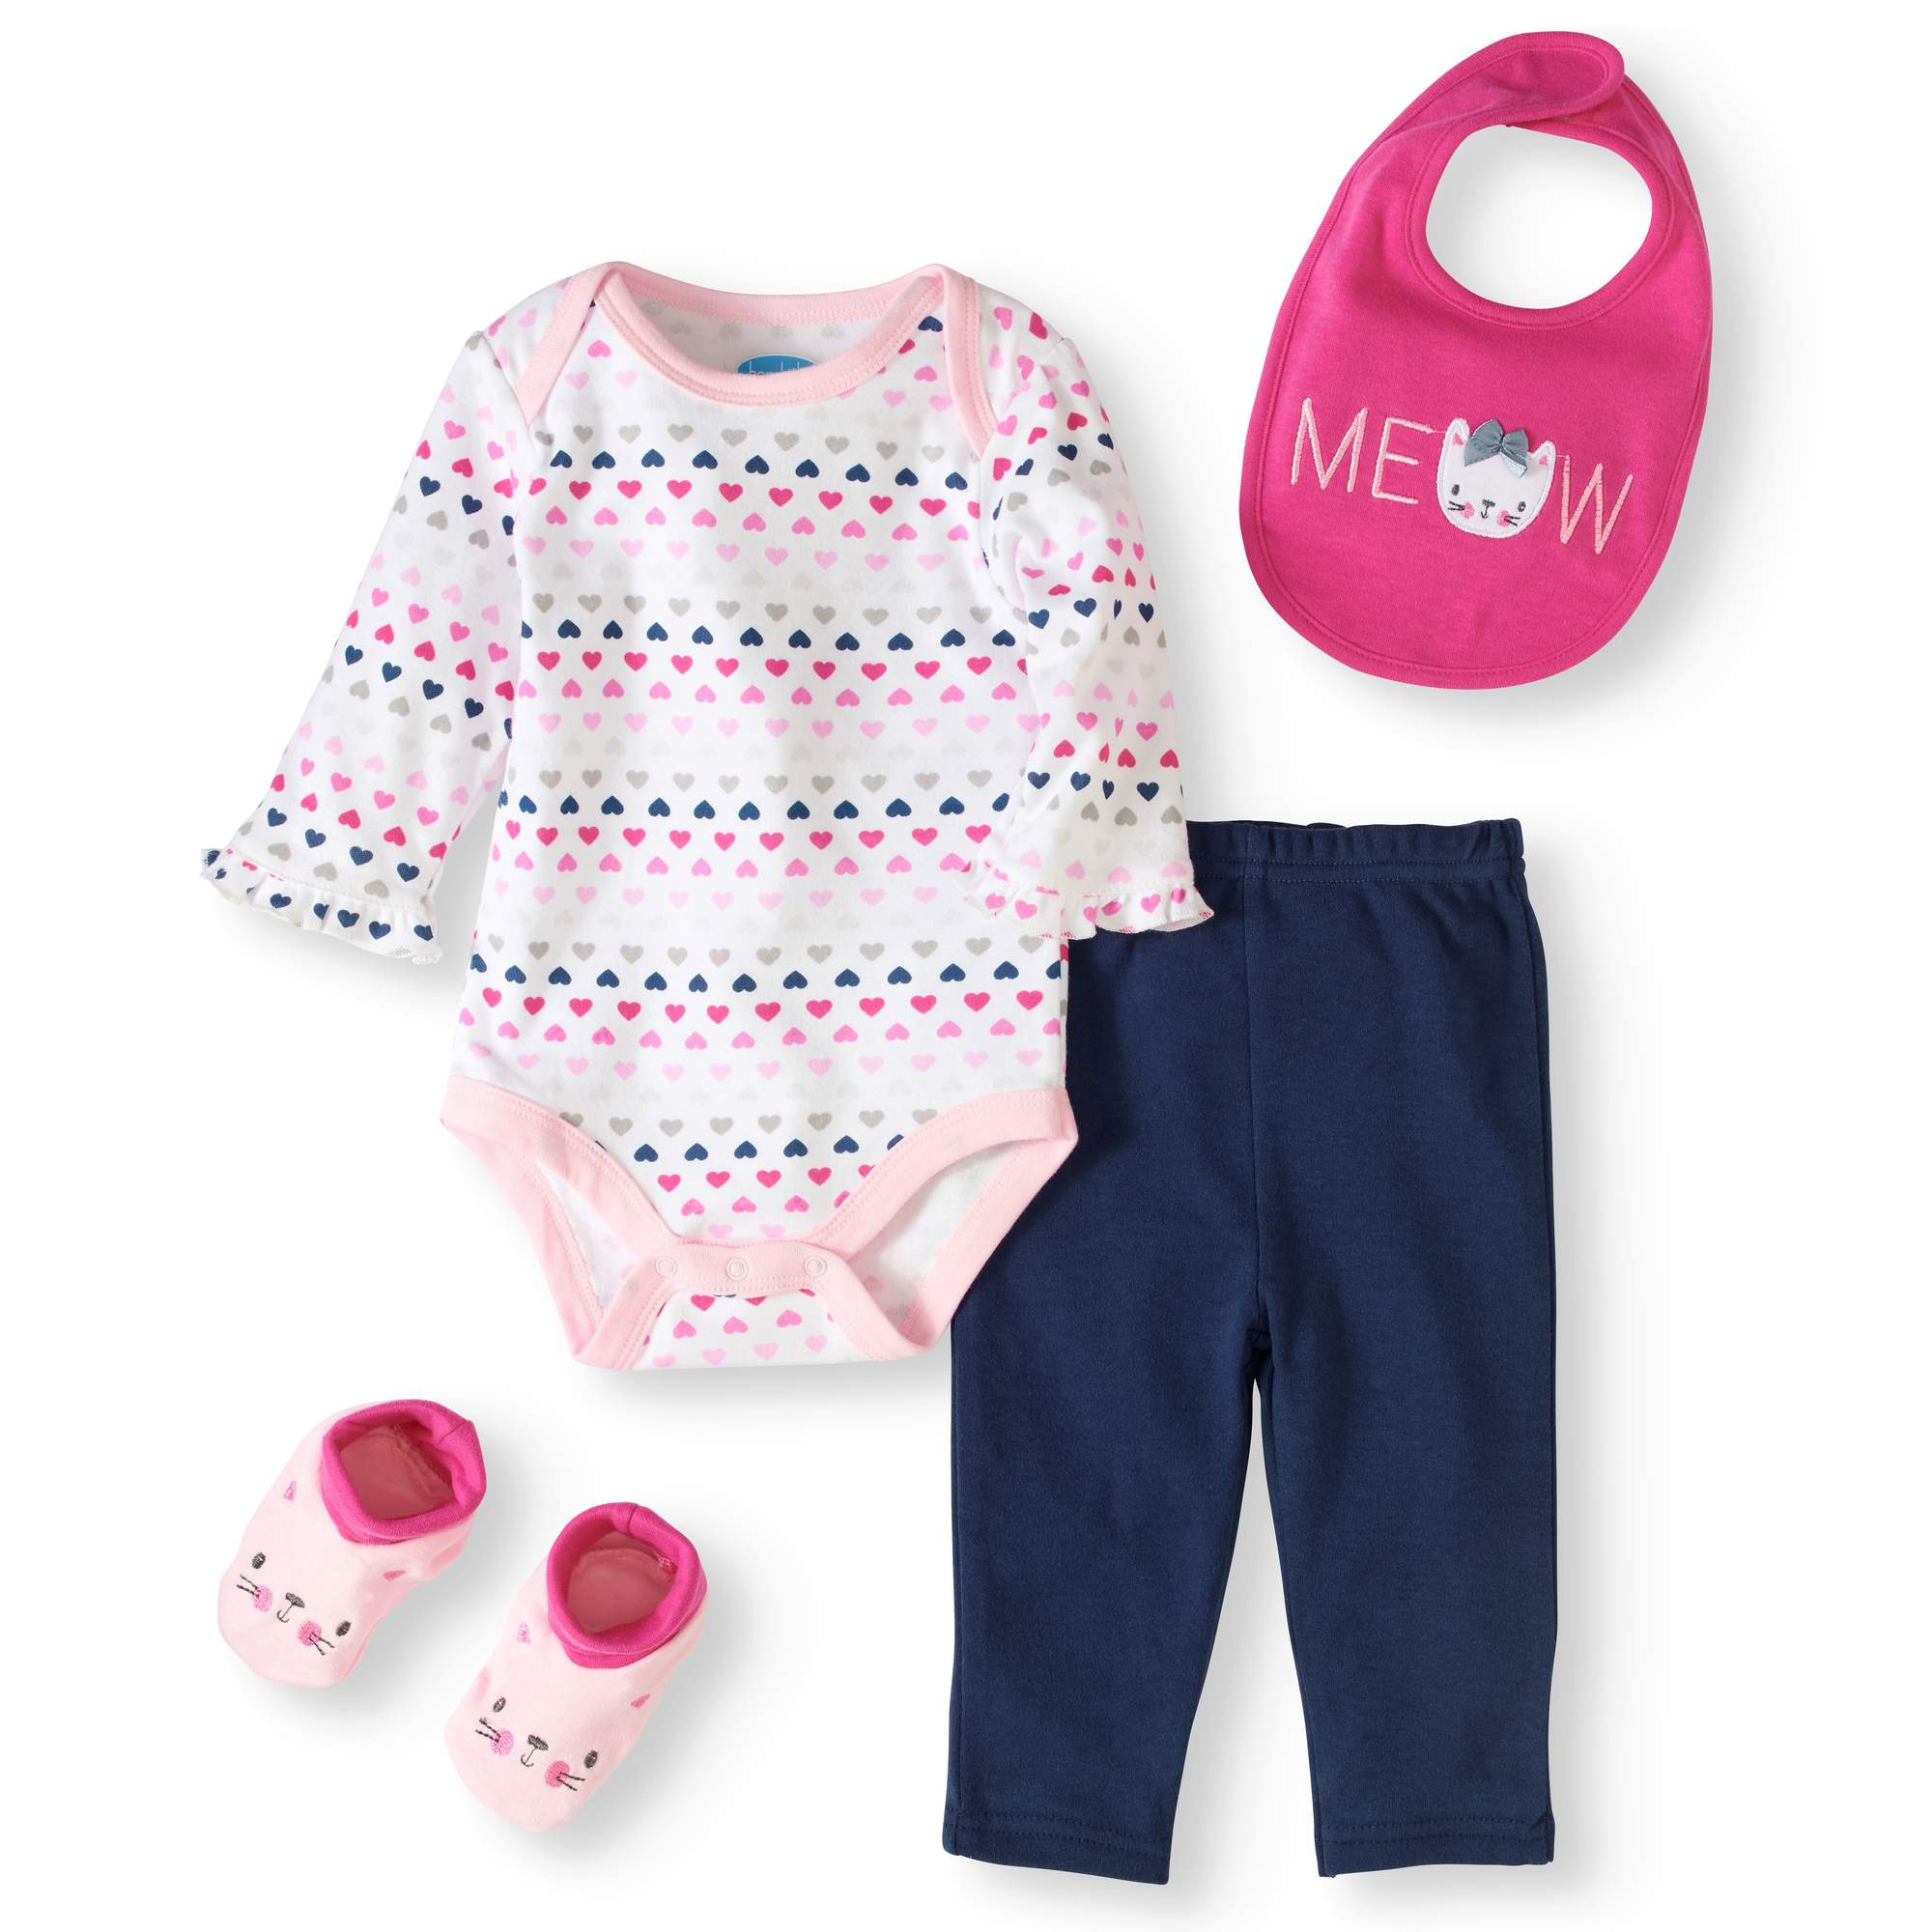 Newborn Baby Girl Bodysuit, Pants, Bib & Booties, 4pc Outfit Set